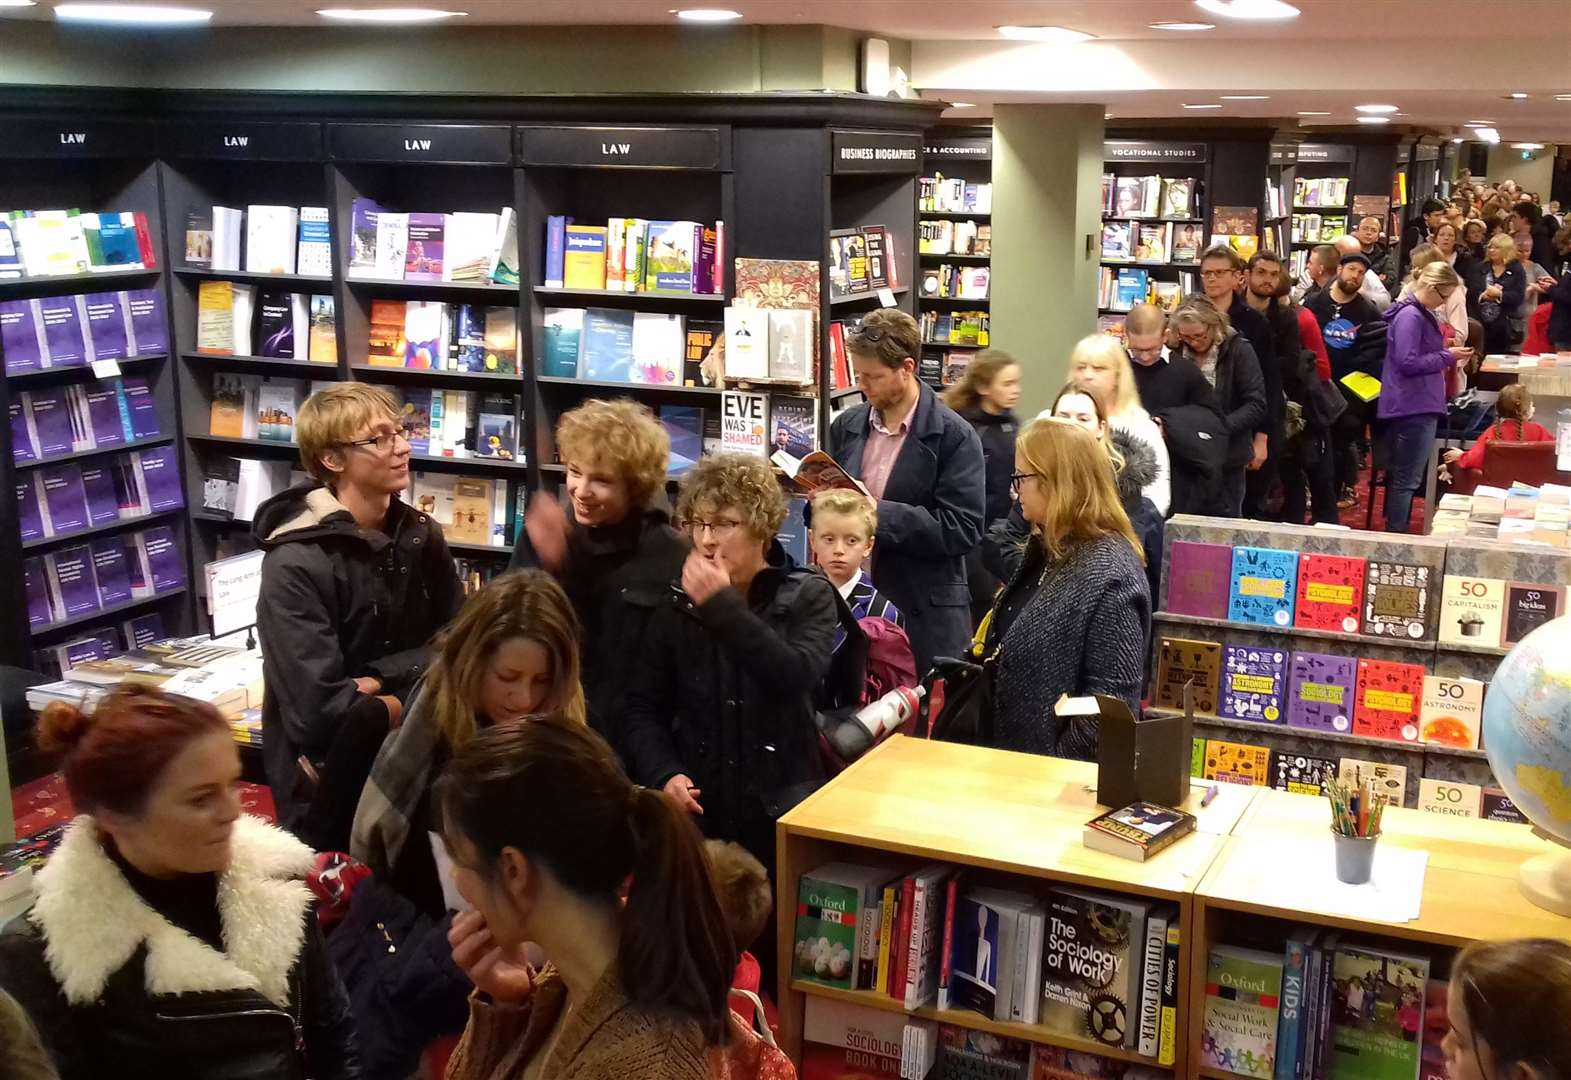 Tim Peake is star attraction at bookshop